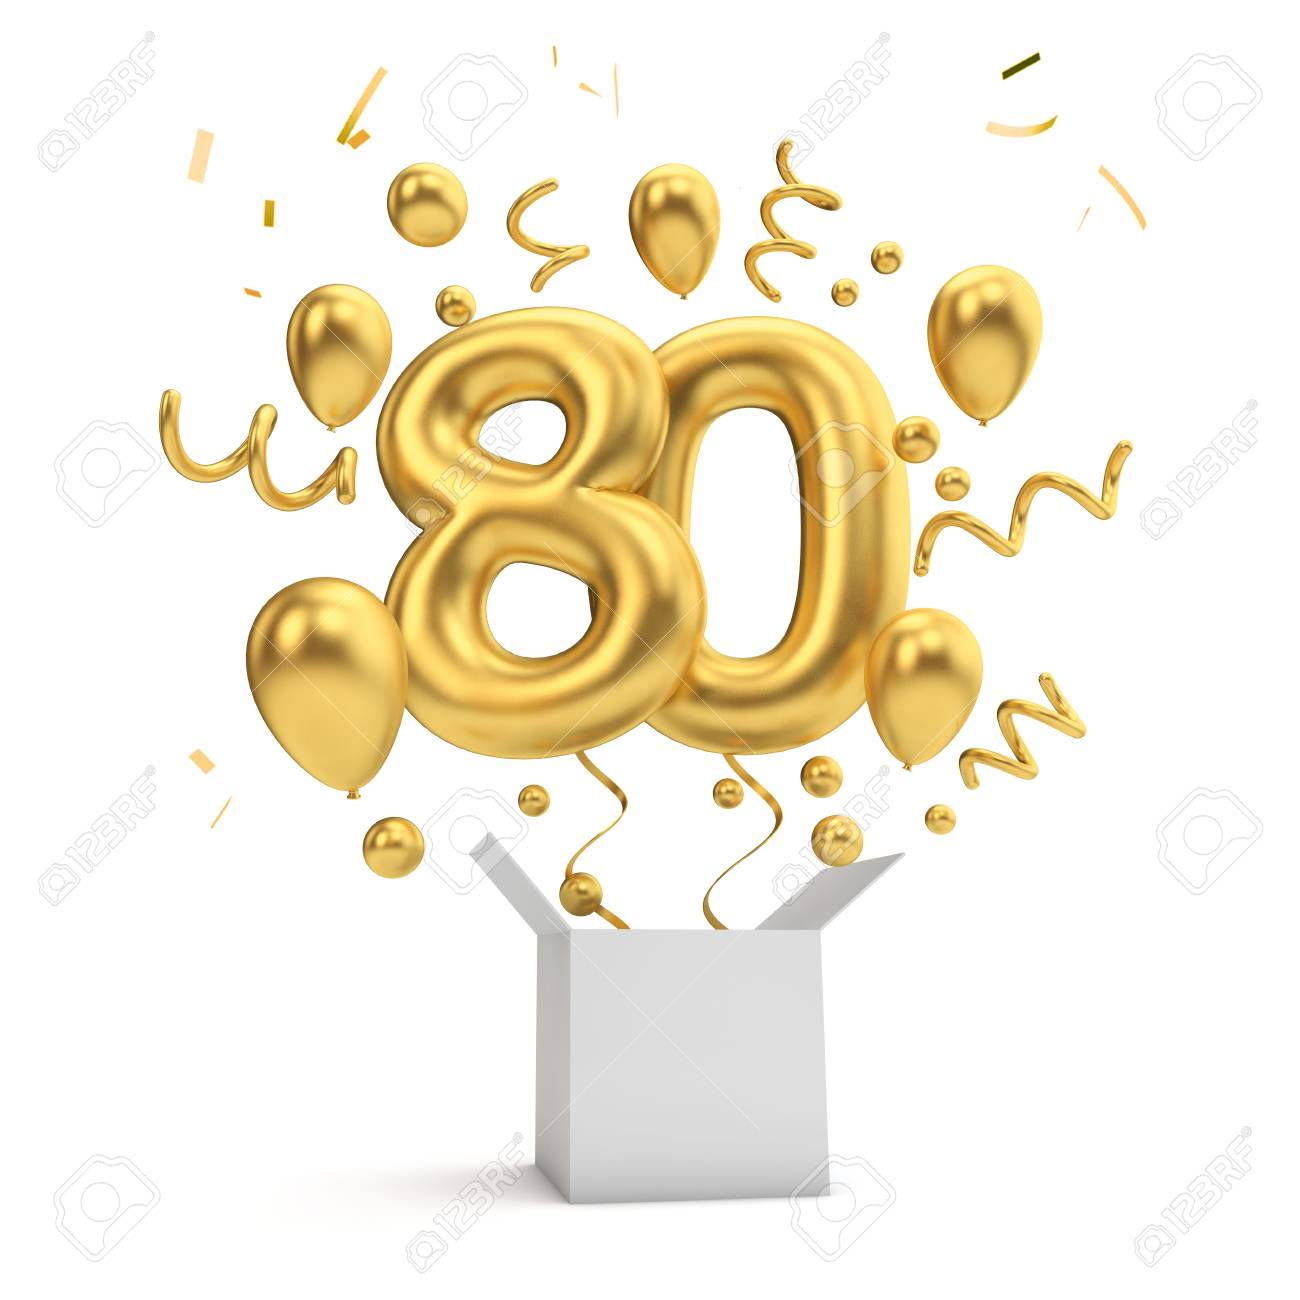 Happy 80th Birthday Gold Surprise Balloon And Box 3D Rendering Stock Photo